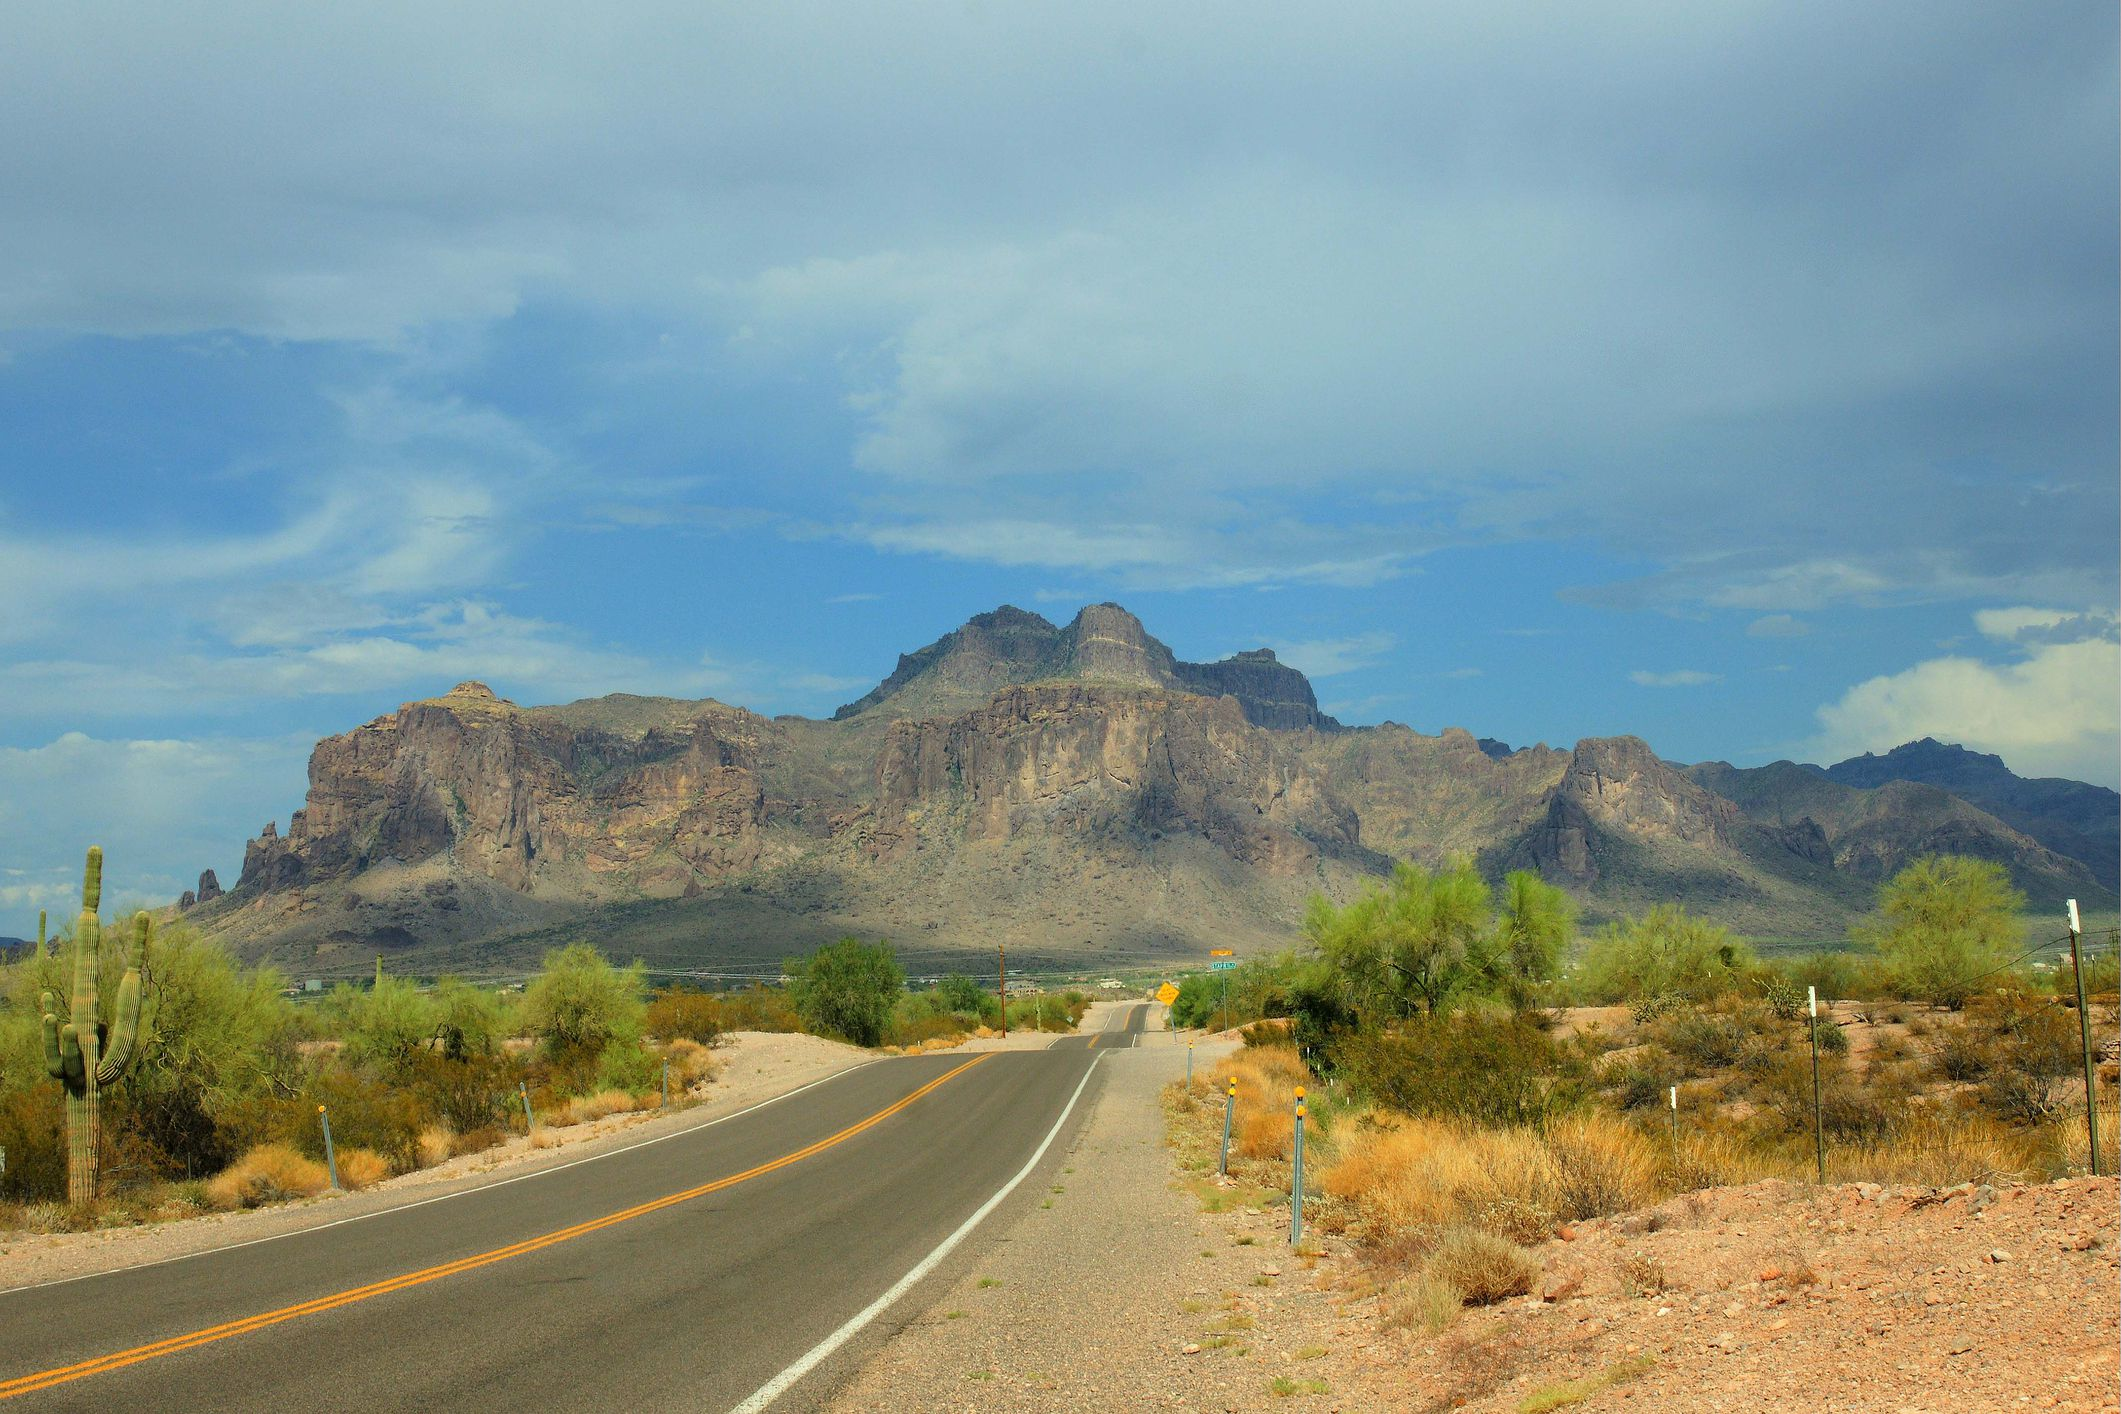 A Scenic Drive on the Apache Trail